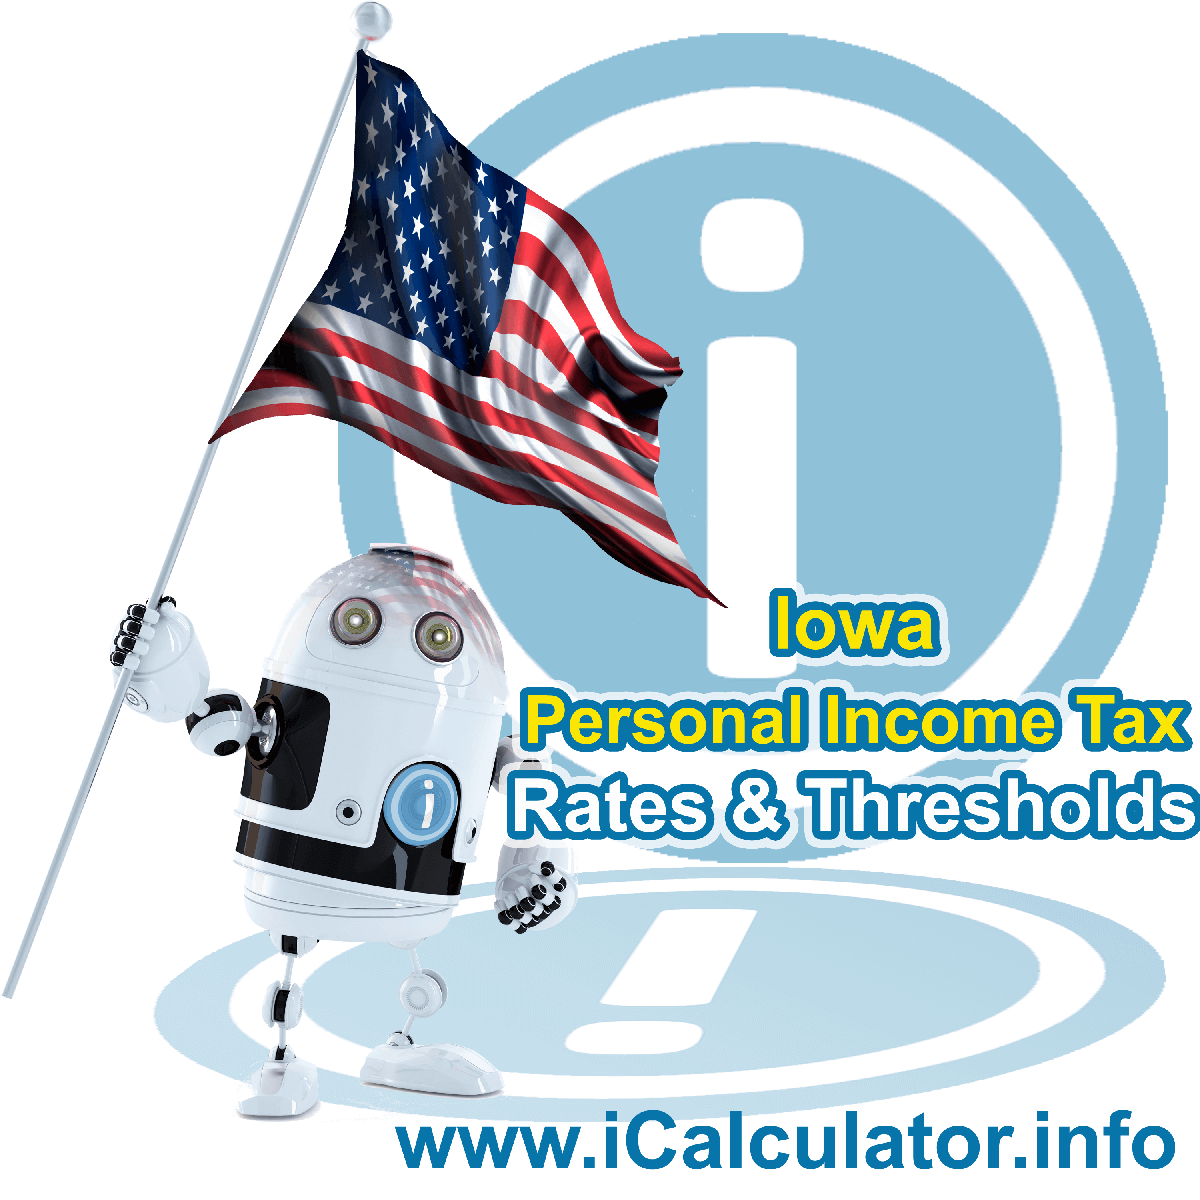 Iowa State Tax Tables 2016. This image displays details of the Iowa State Tax Tables for the 2016 tax return year which is provided in support of the 2016 US Tax Calculator